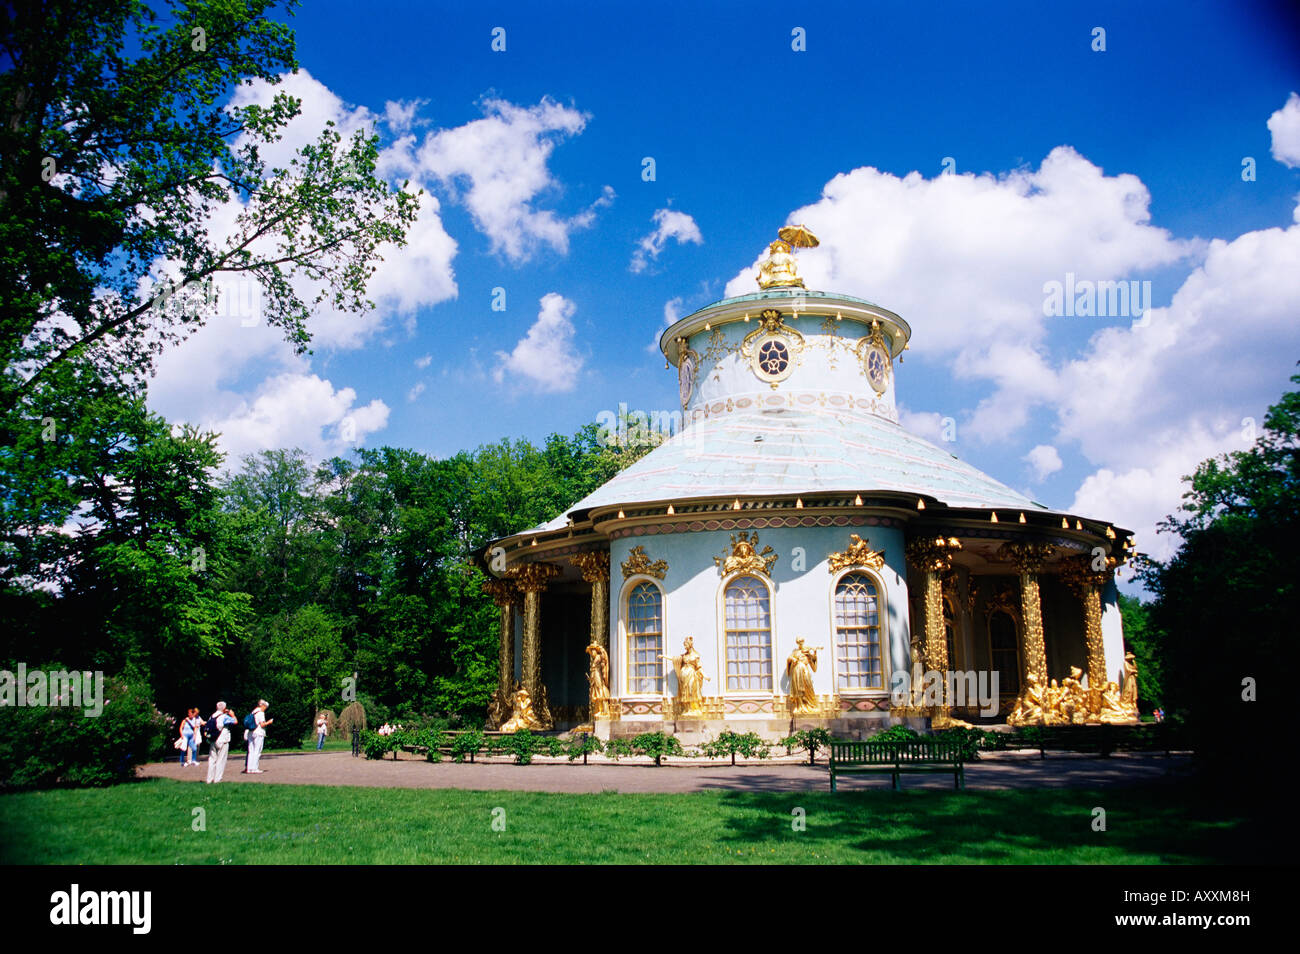 Exterior of the Chinese house, Potsdam, Germany, Europe - Stock Image